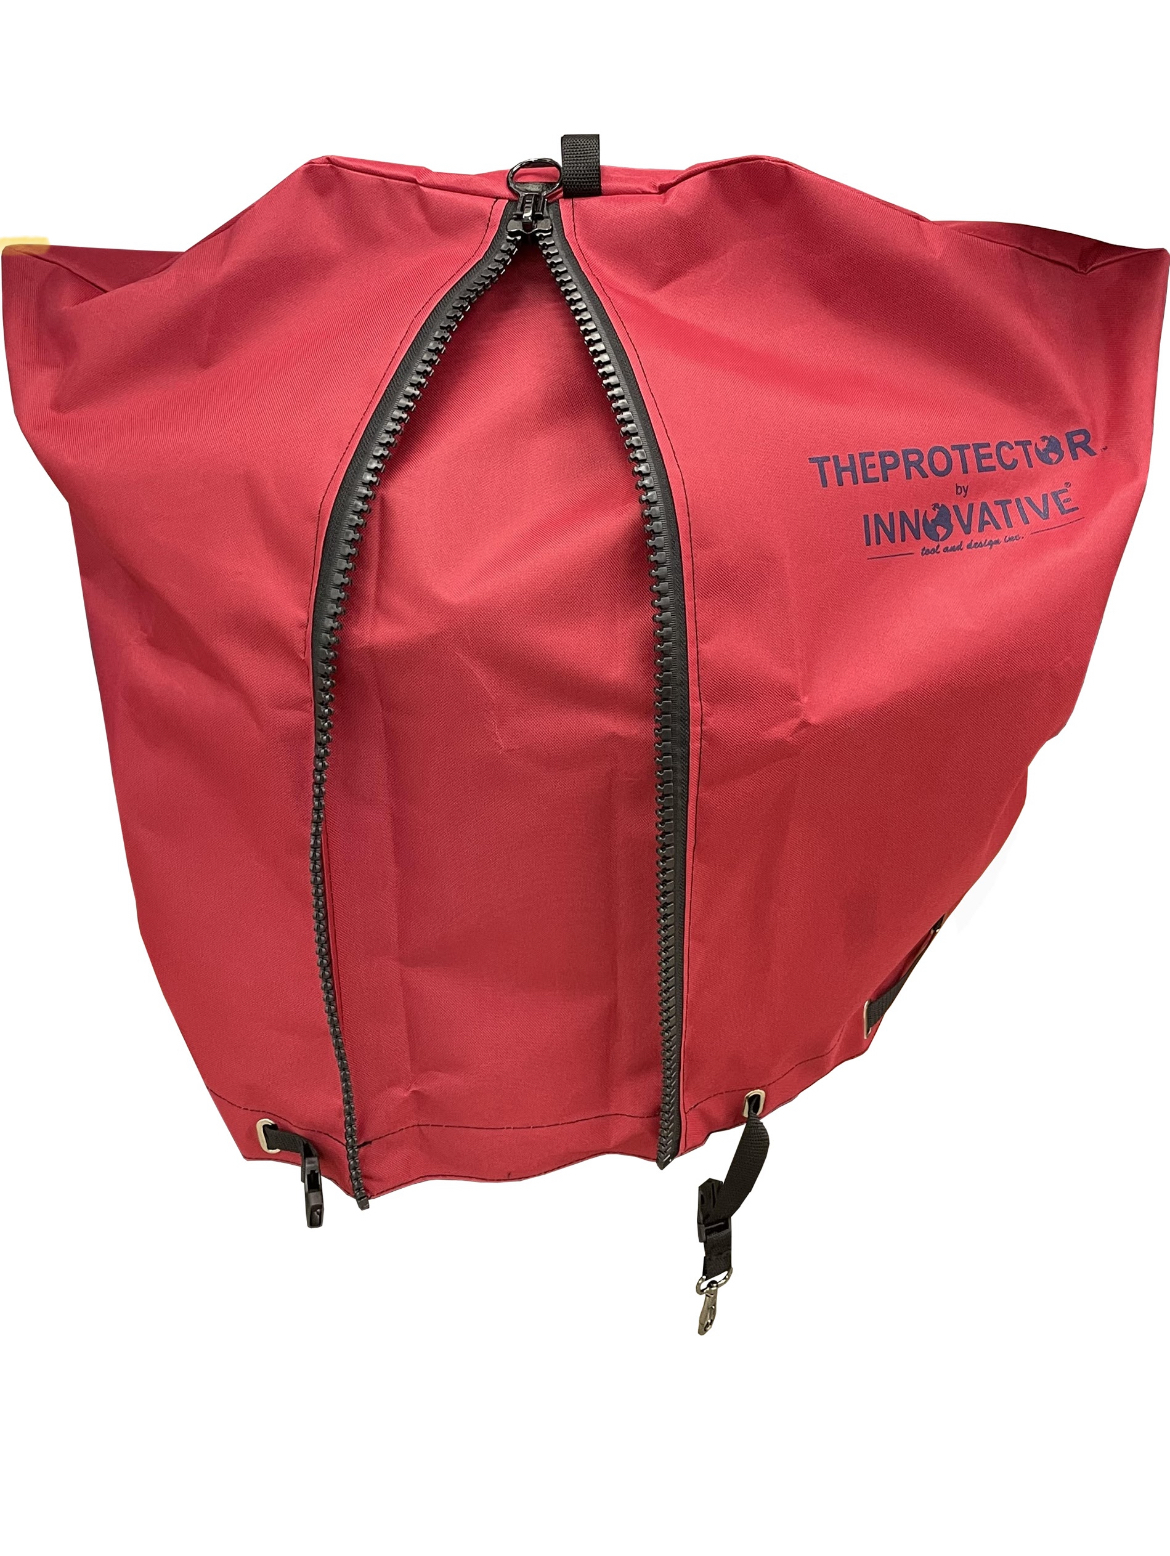 Picture of RED Backpack blower cover/ Expandable design.